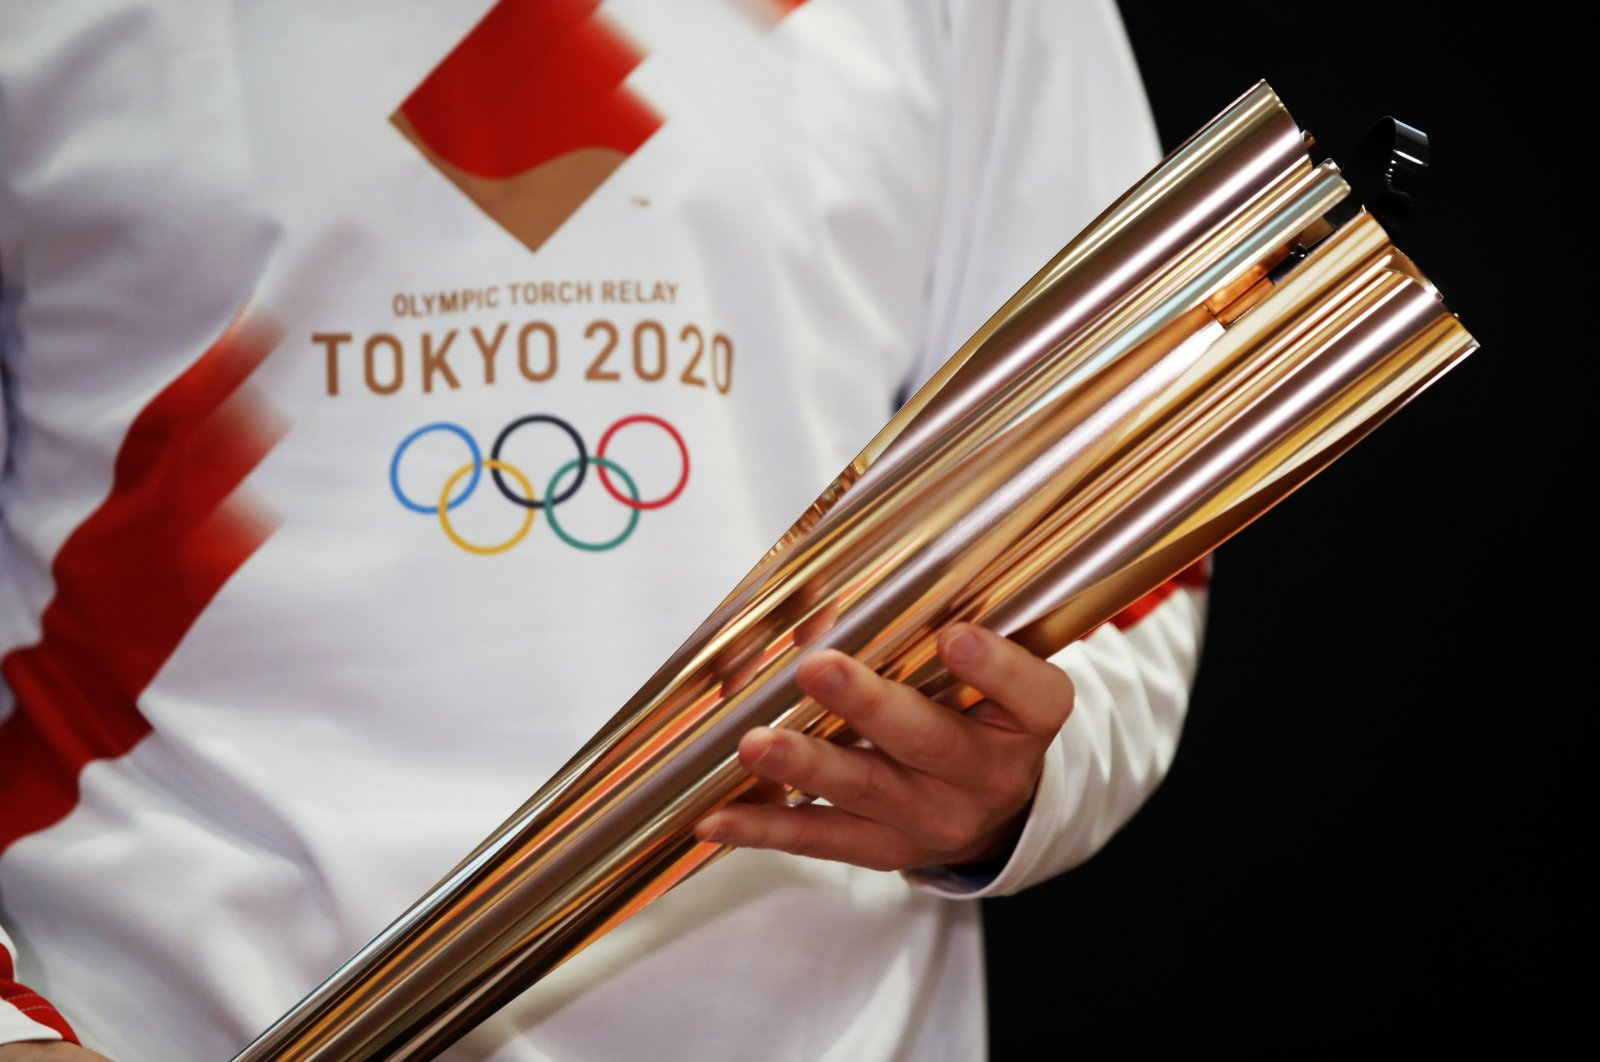 Greek singer Sakis Rouvas wears the uniform of the torch relay runners in Athens, Greece, as he holds the torch of the 2020 Tokyo Olympic Games during a presentation, Feb. 24, 2020. (AP Photo)